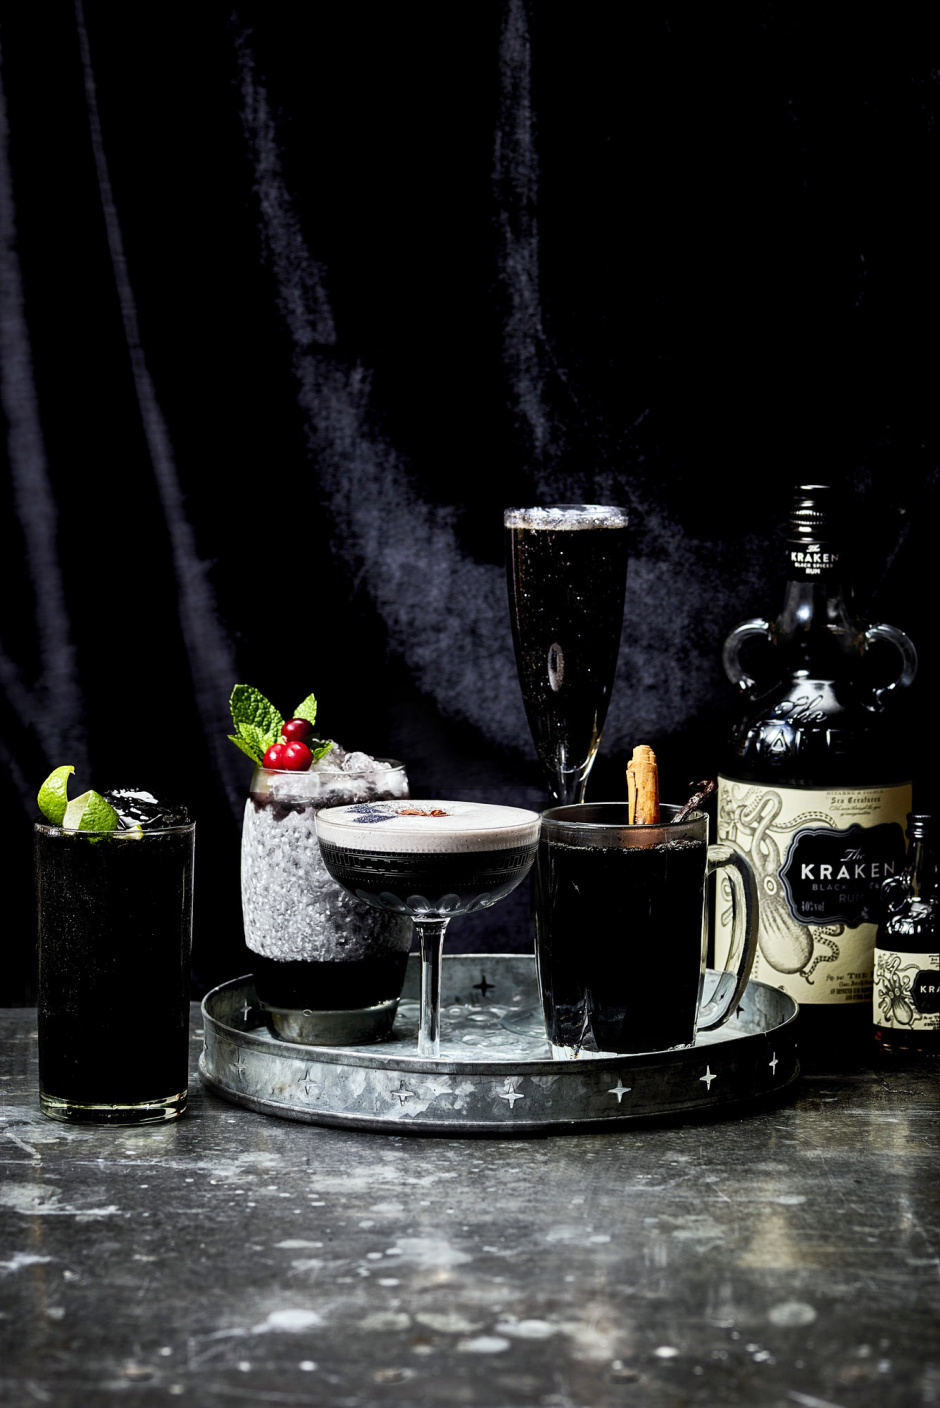 Cocktails (from left to right), Kraken Inky Winter Storm, Kraken Midnight Frost, Kraken Black Blitzen, Kraken's Little Helper and the hot, mulled Kraken It's Cold Outside feature at Kraken Black Christmas, new pop-up Christmas experience launching this December, promises a mouth-watering dark twist on the ideal festive meal.. the world's first ever all-black Christmas feast. For further information please contact Cow PR on 020 7234 9150 or kraken@cowpr.com PR Handout - free for editorial usage.